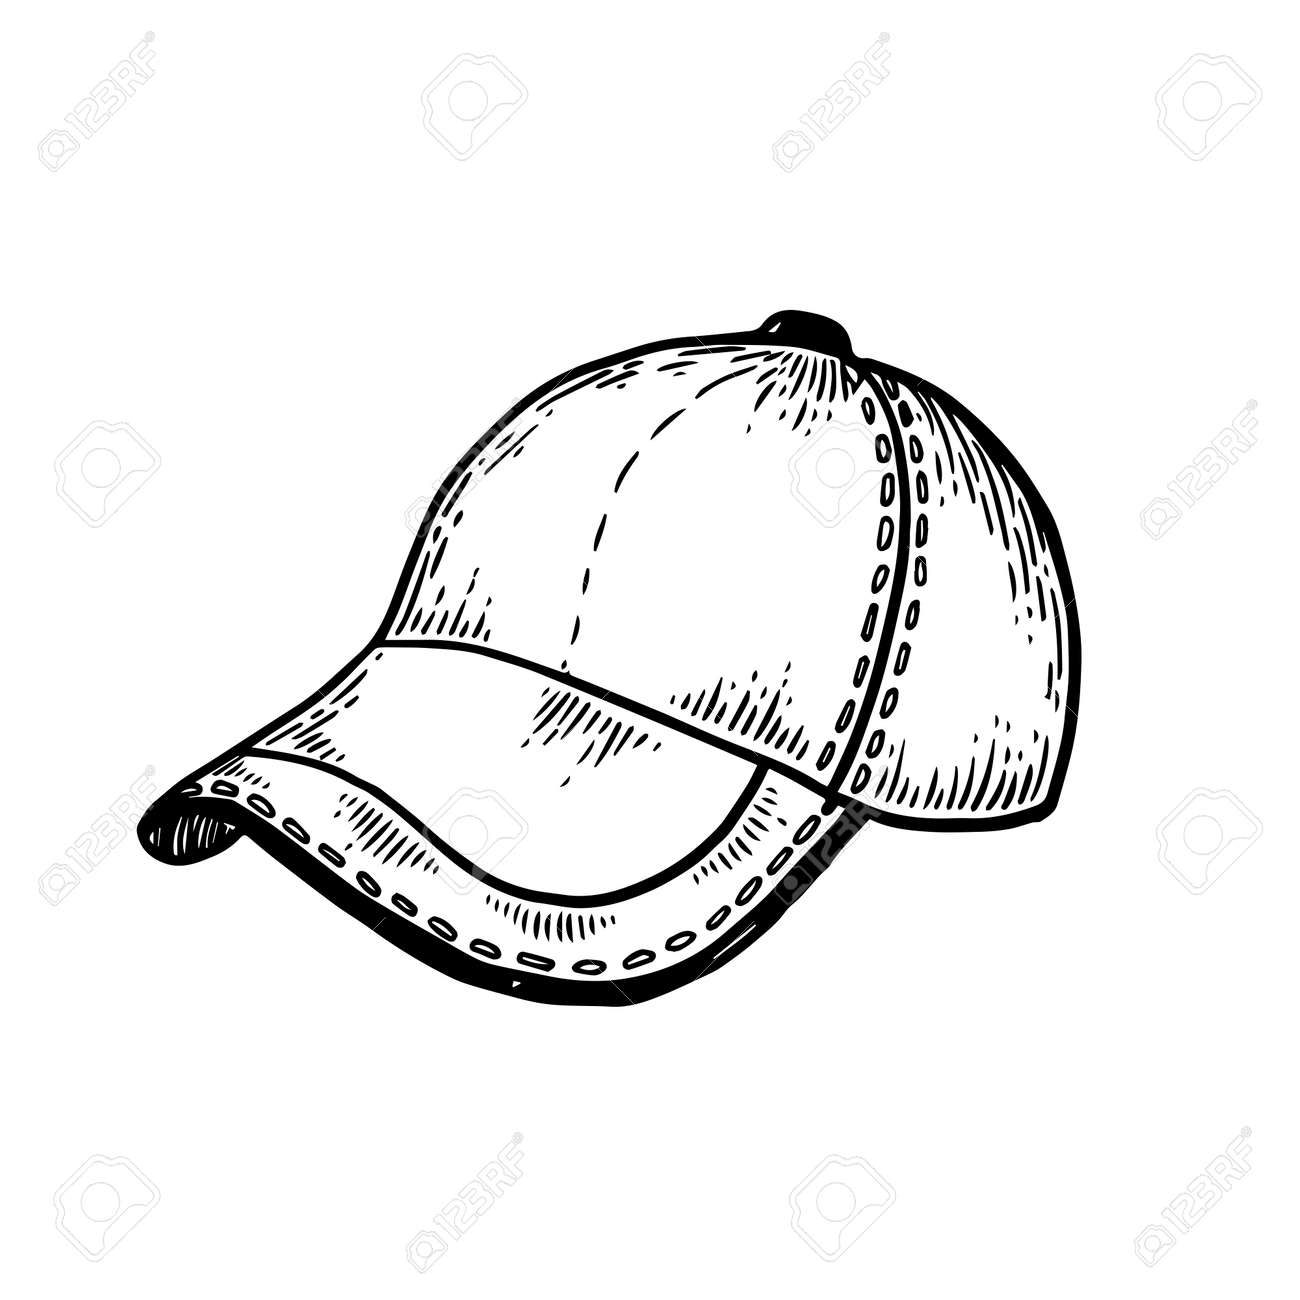 6420dad1 Baseball sport equipment cap engraving vector illustration. Isolated image  on white background. Scratch board